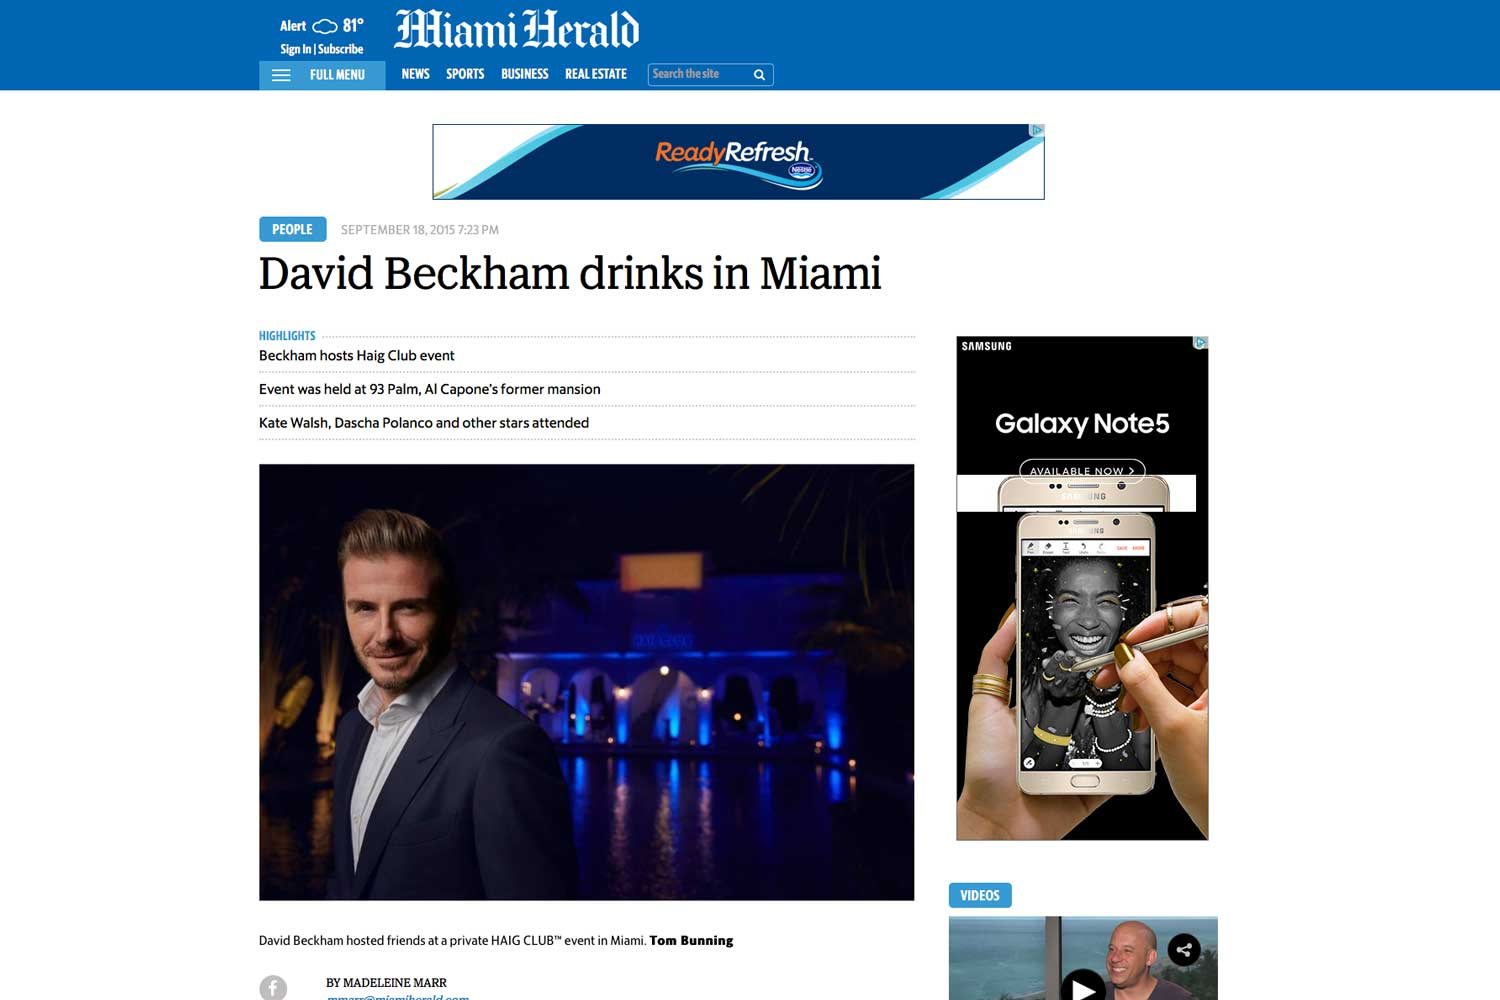 """<p><strong>Miami Herald</strong><a href=""""http://www.miamiherald.com/entertainment/celebrities/article35760513.html"""" target=""""_blank"""">Read Article→</a></p>"""